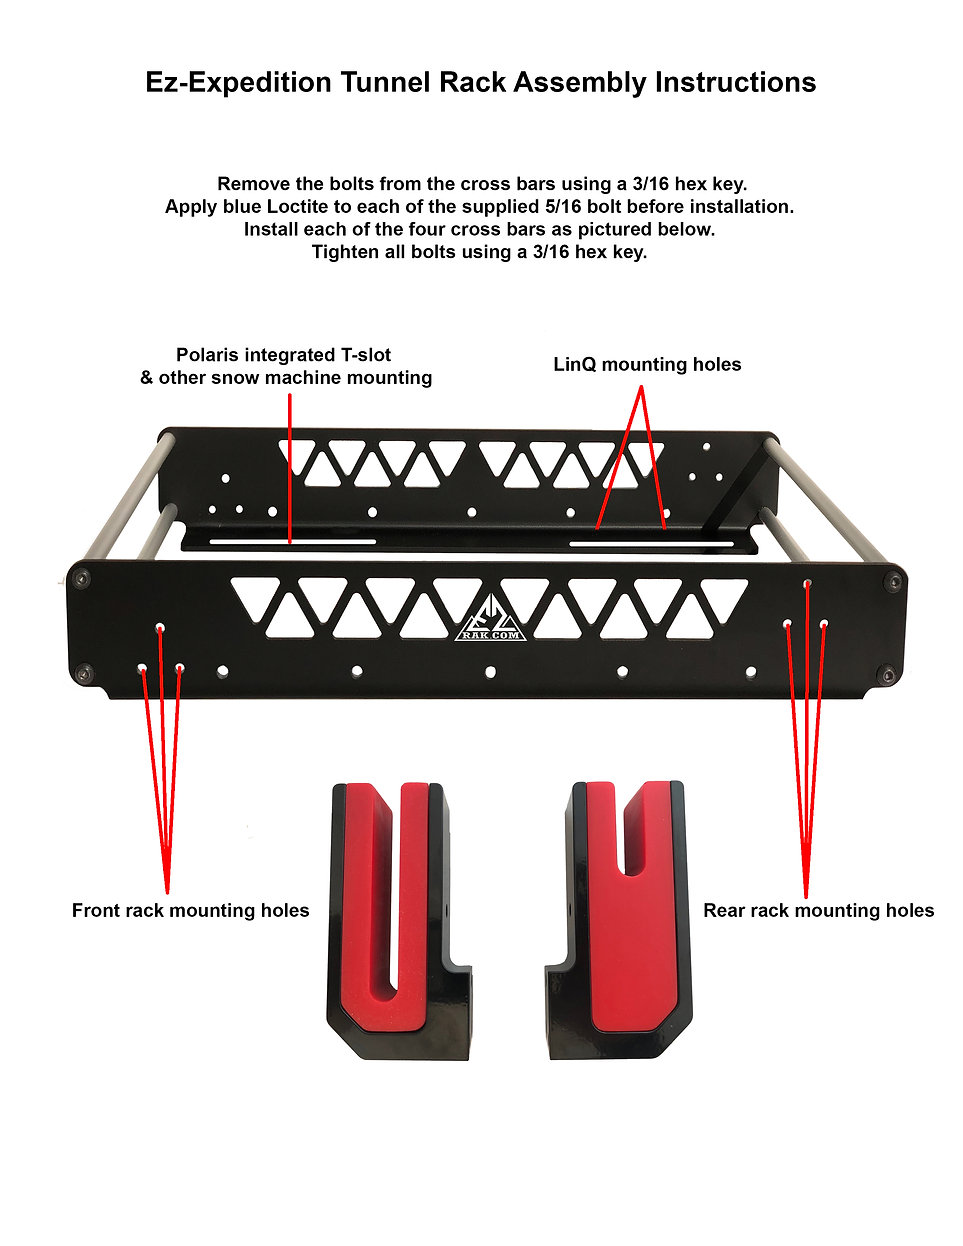 Ez-Exadition Rack Assembly Instructions.